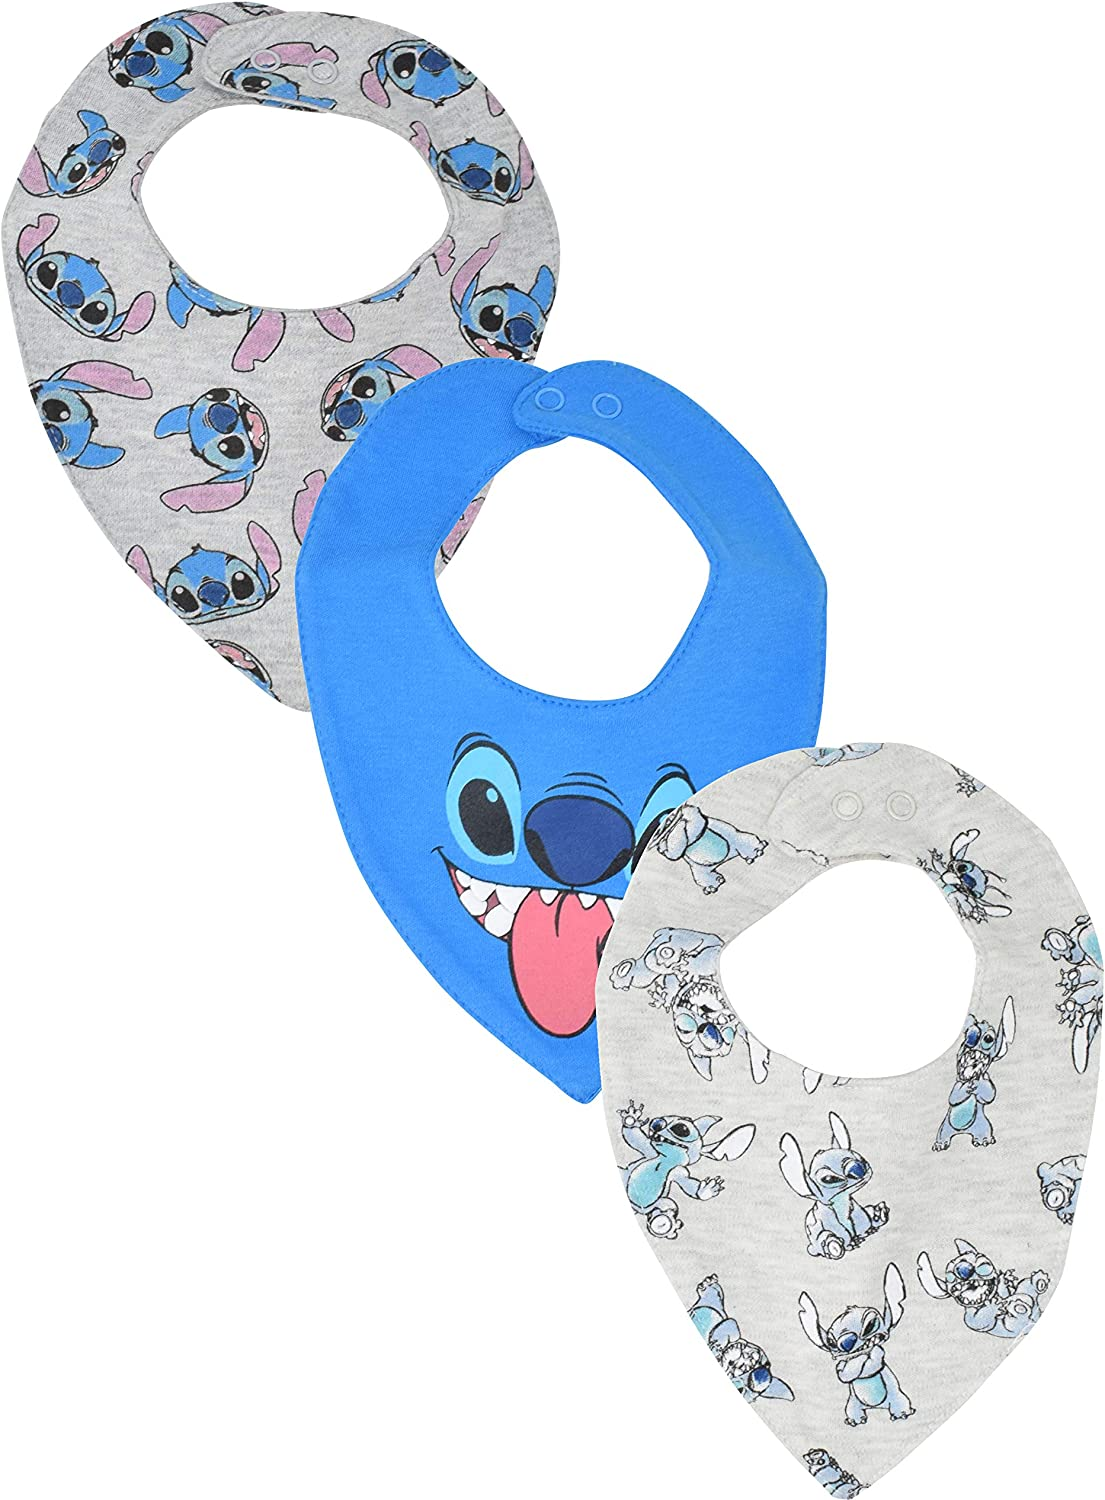 Disney Baby Boys 3 Pack Bibs Lion King Winnie the Pooh Toy Story Marvel Avengers